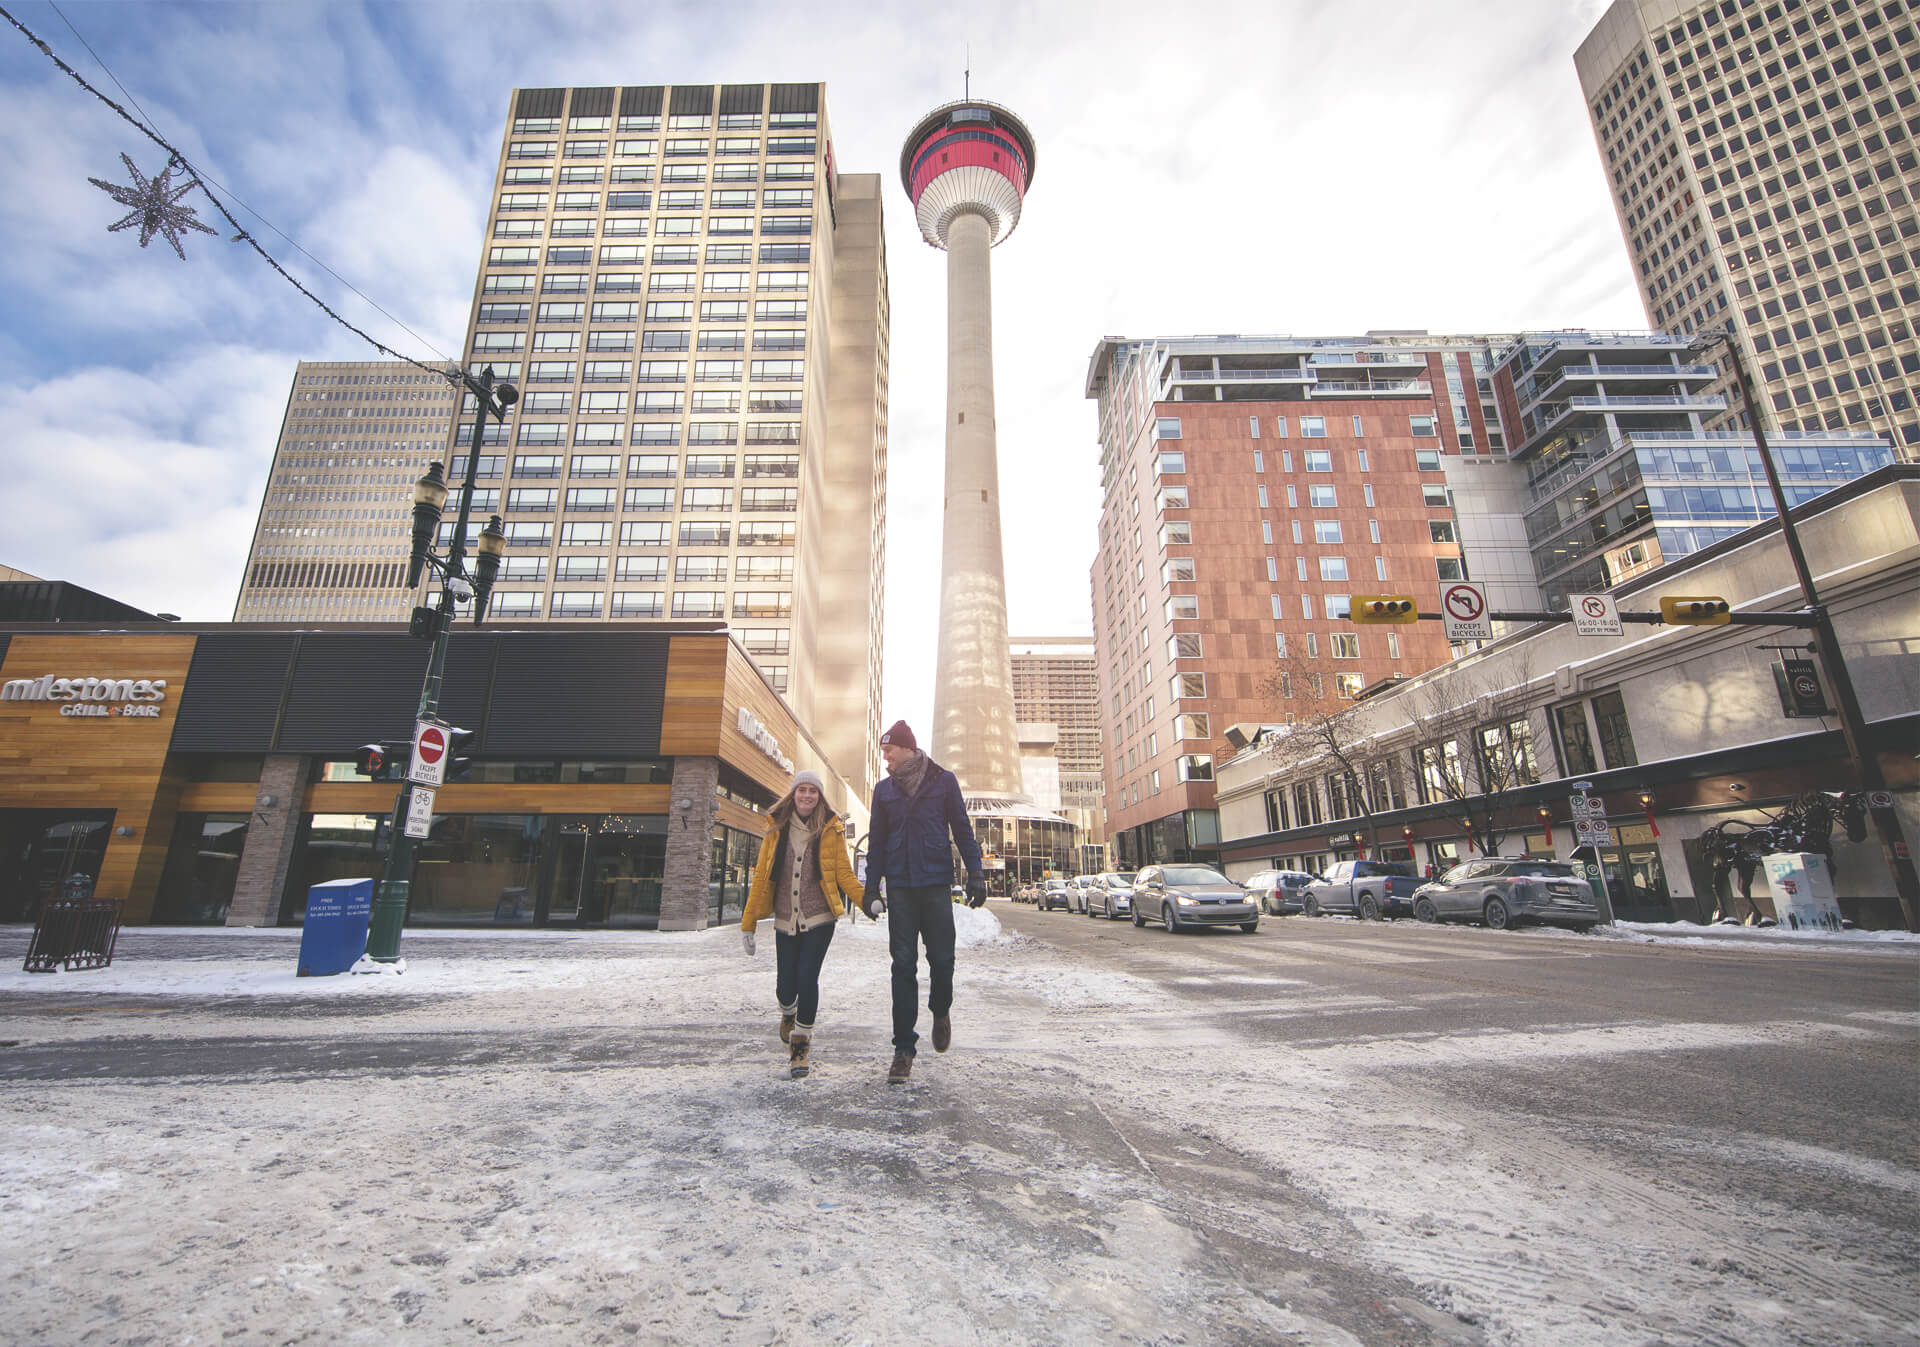 The Calgary Tower is a must see experience in Calgary